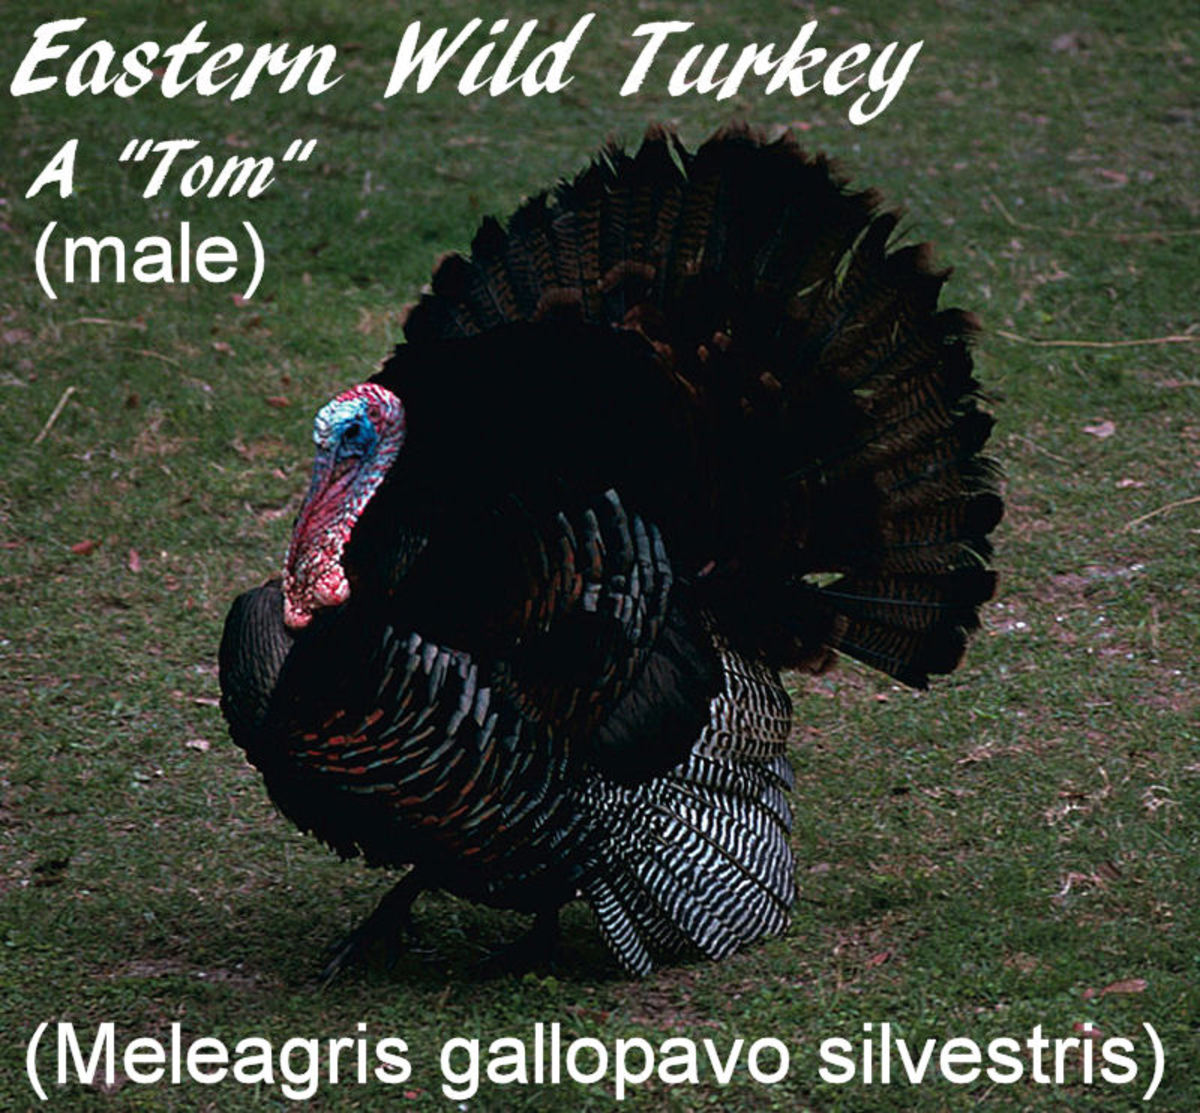 Eastern wild turkey - male (tom)